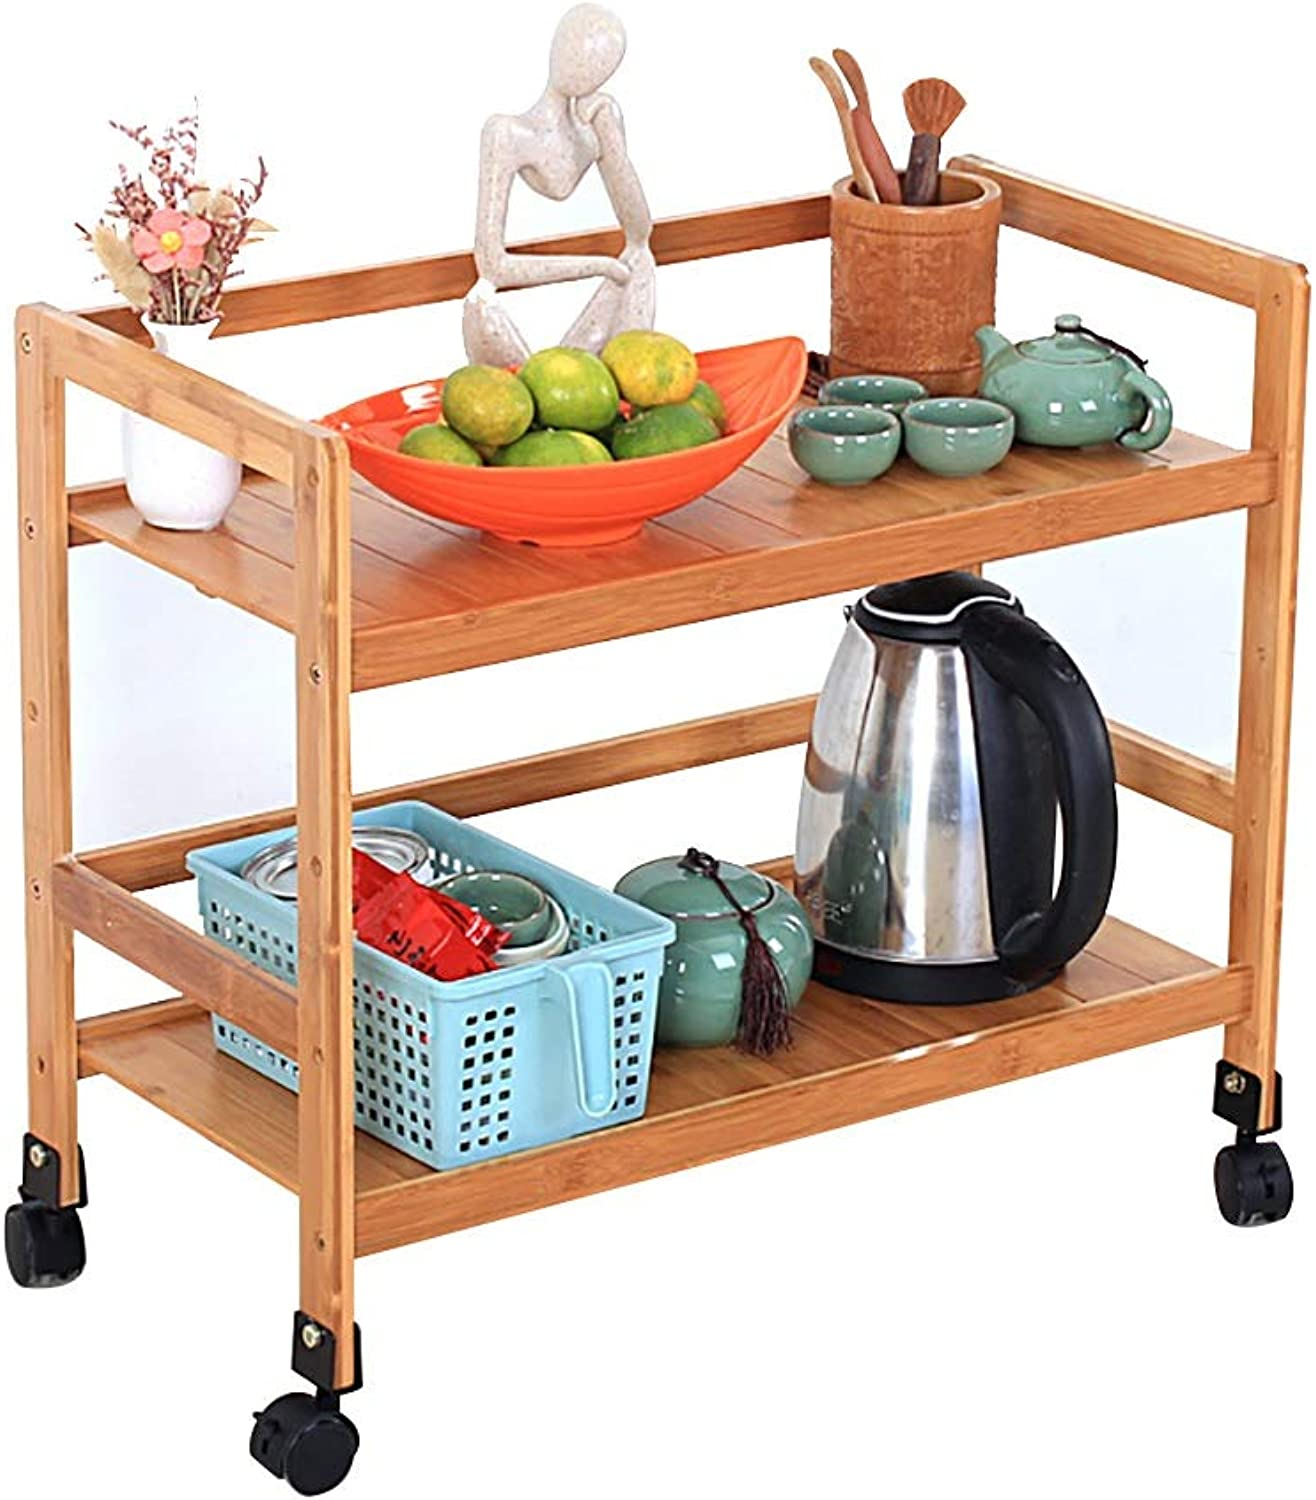 Kitchen Serving Trolley Cart 2 Tiers Kitchen Storage Trolley on Wheels Restaurant Storage Finishing Shelves Bamboo (color   A)